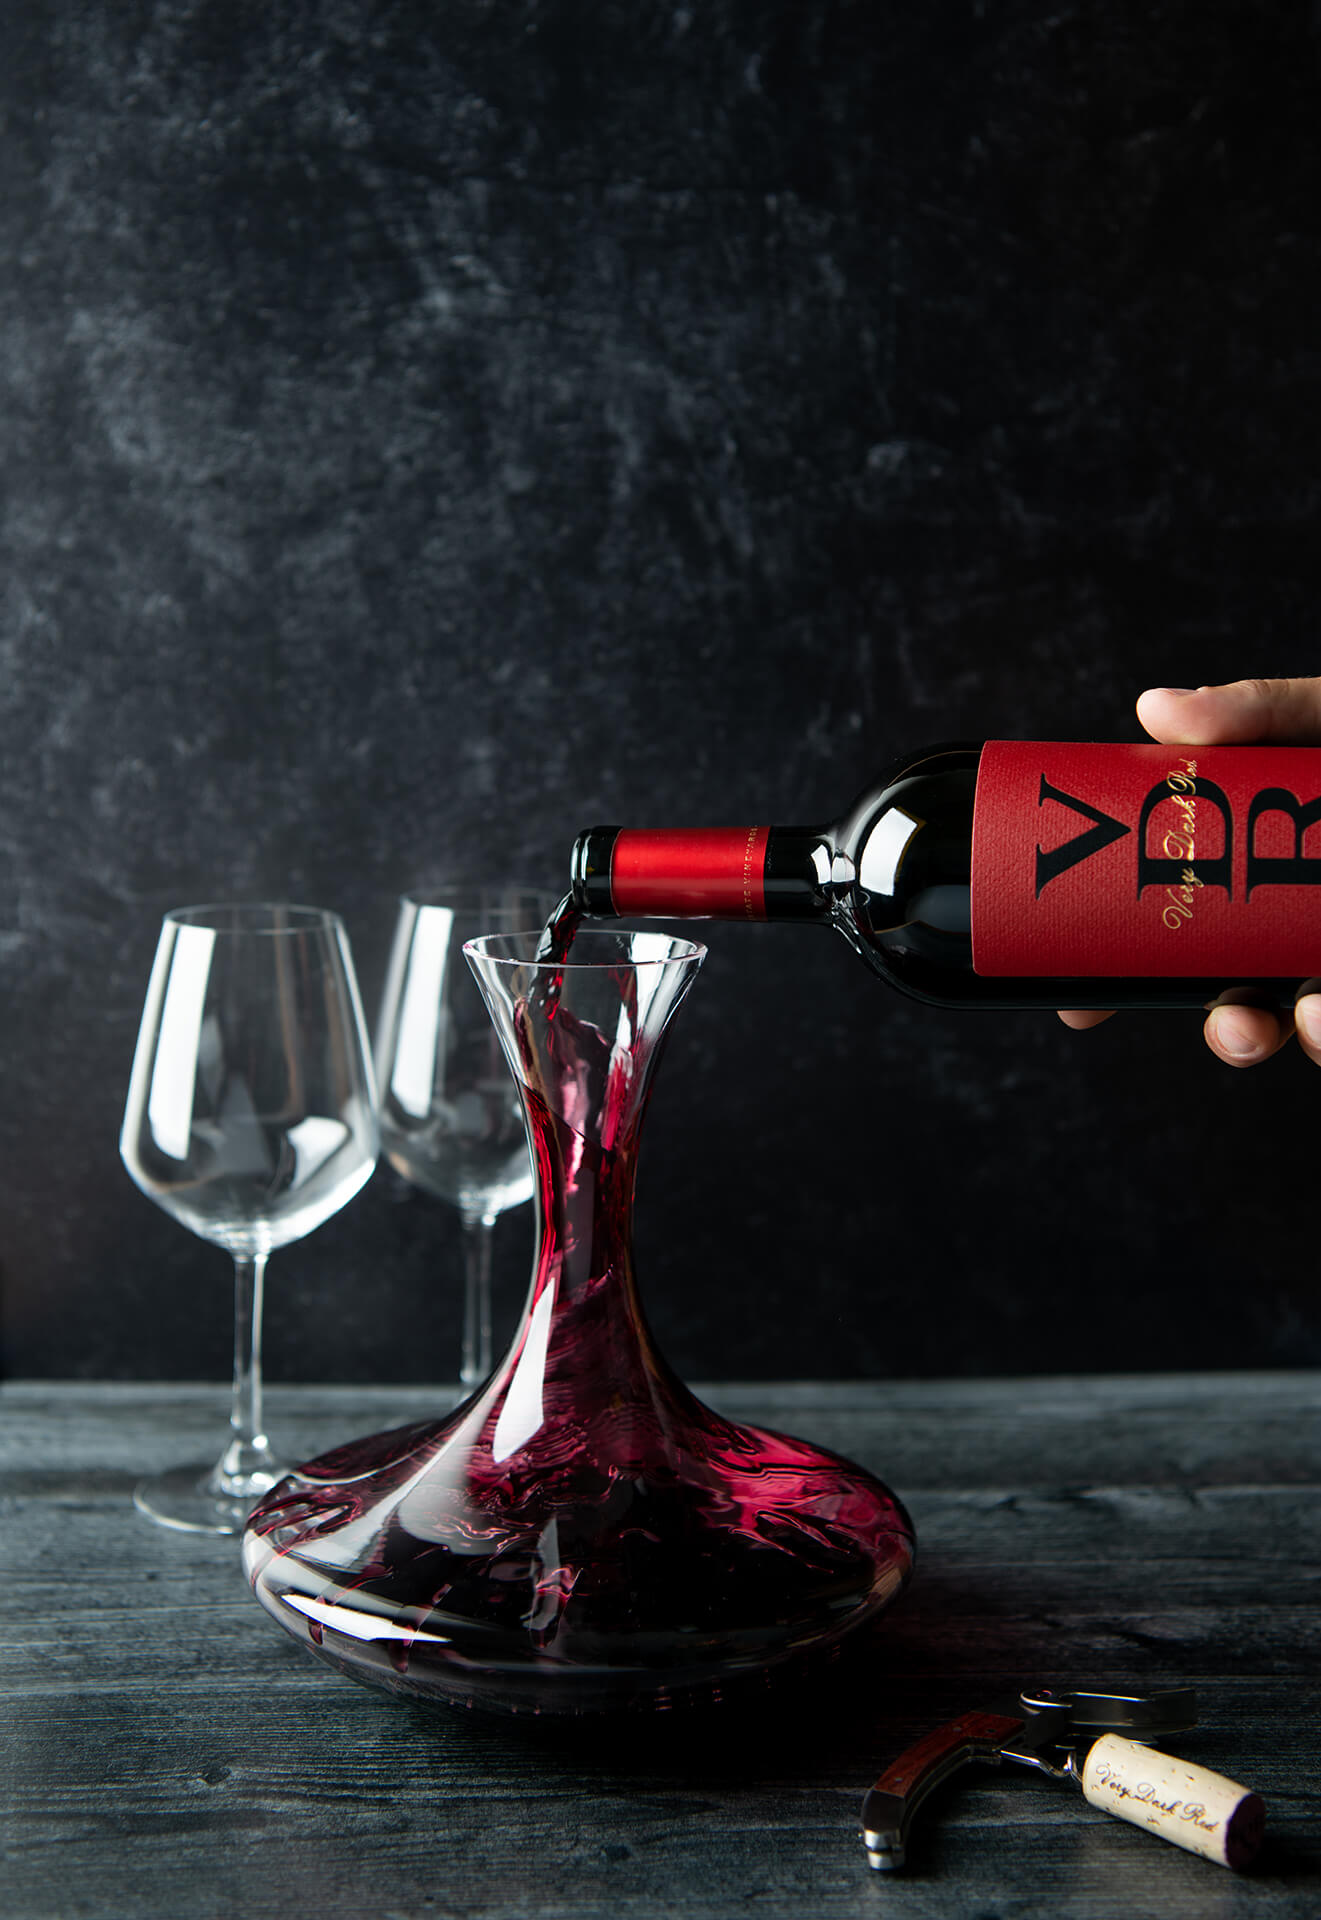 VDR Wine bottle